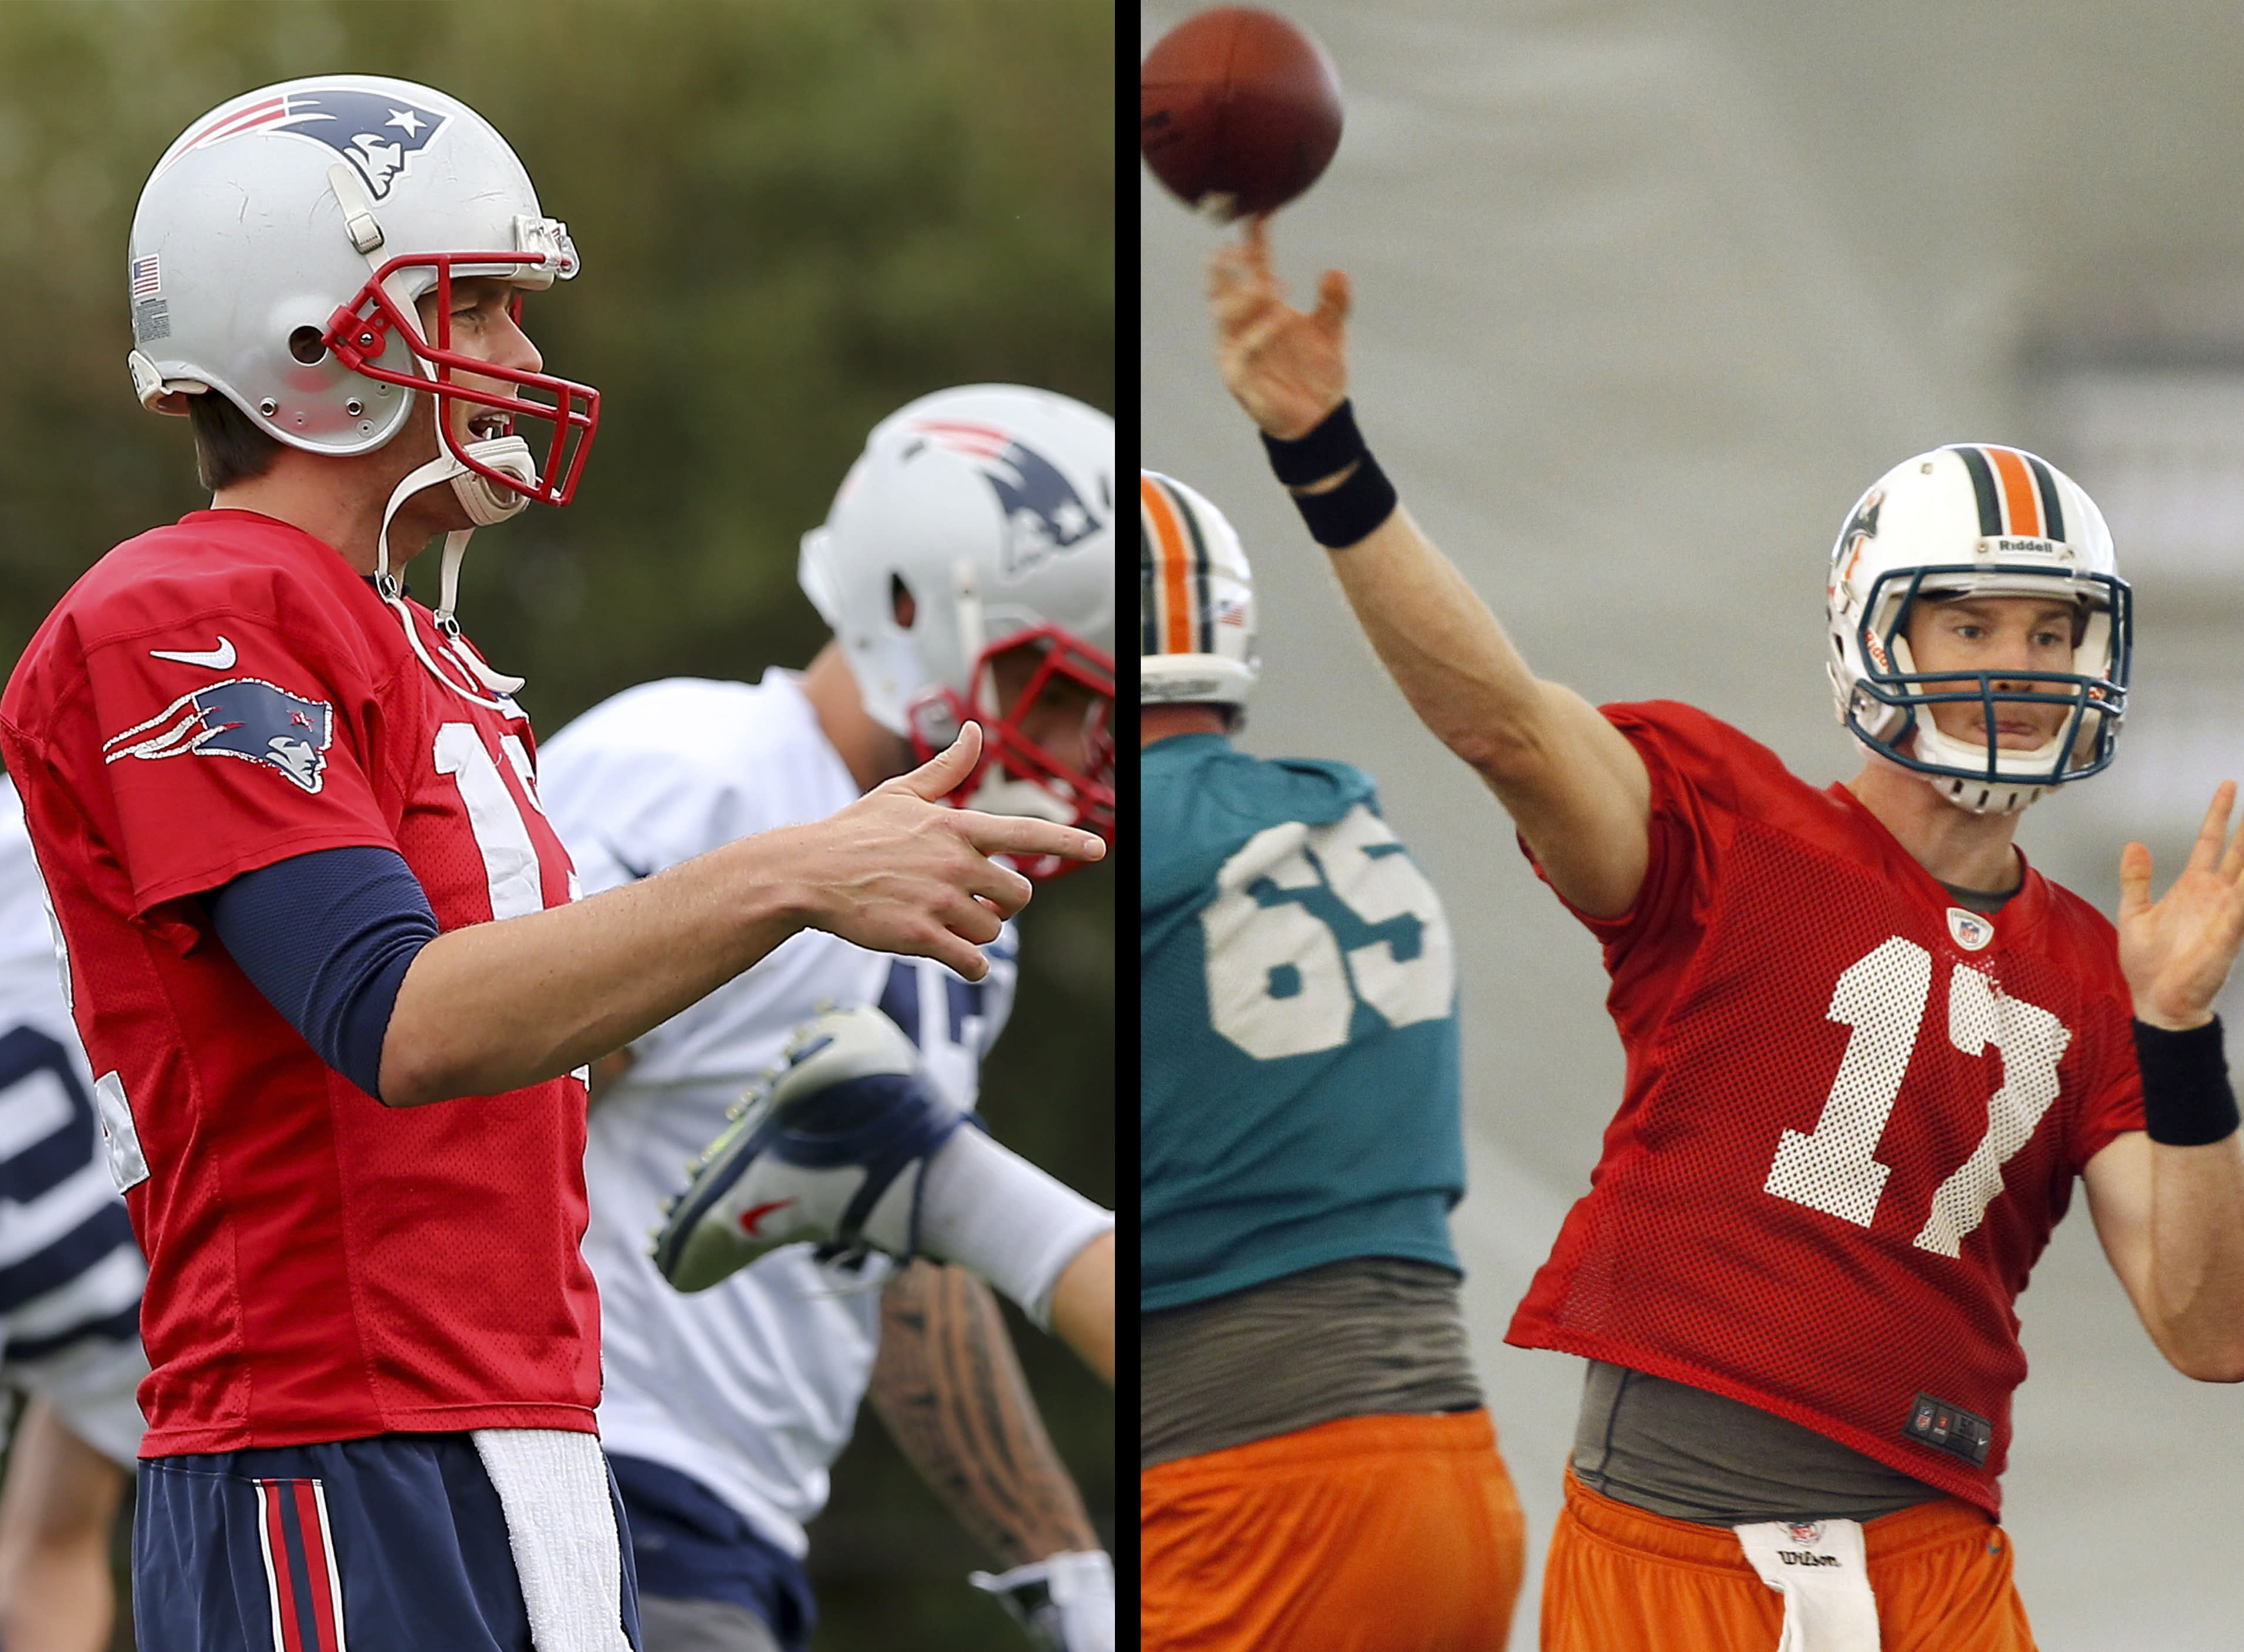 Brady treats scout team players much differently than Tannehill